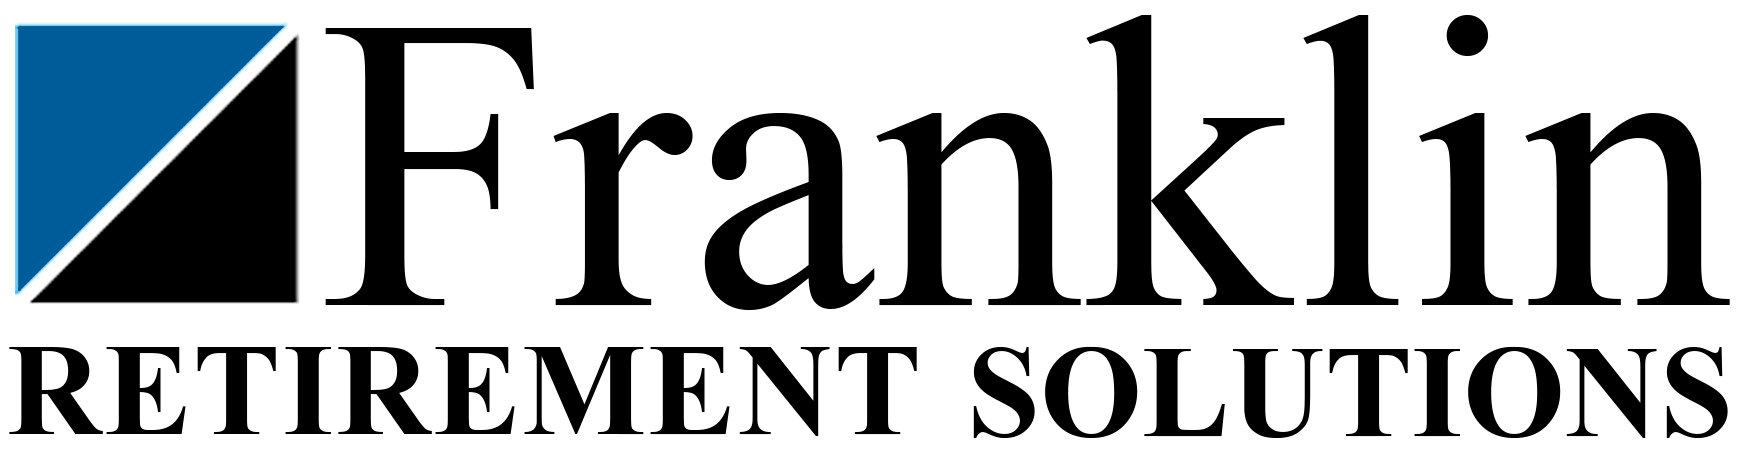 Franklin Retirement Solutions is a Willow Grove-based financial advisor and retirement planner